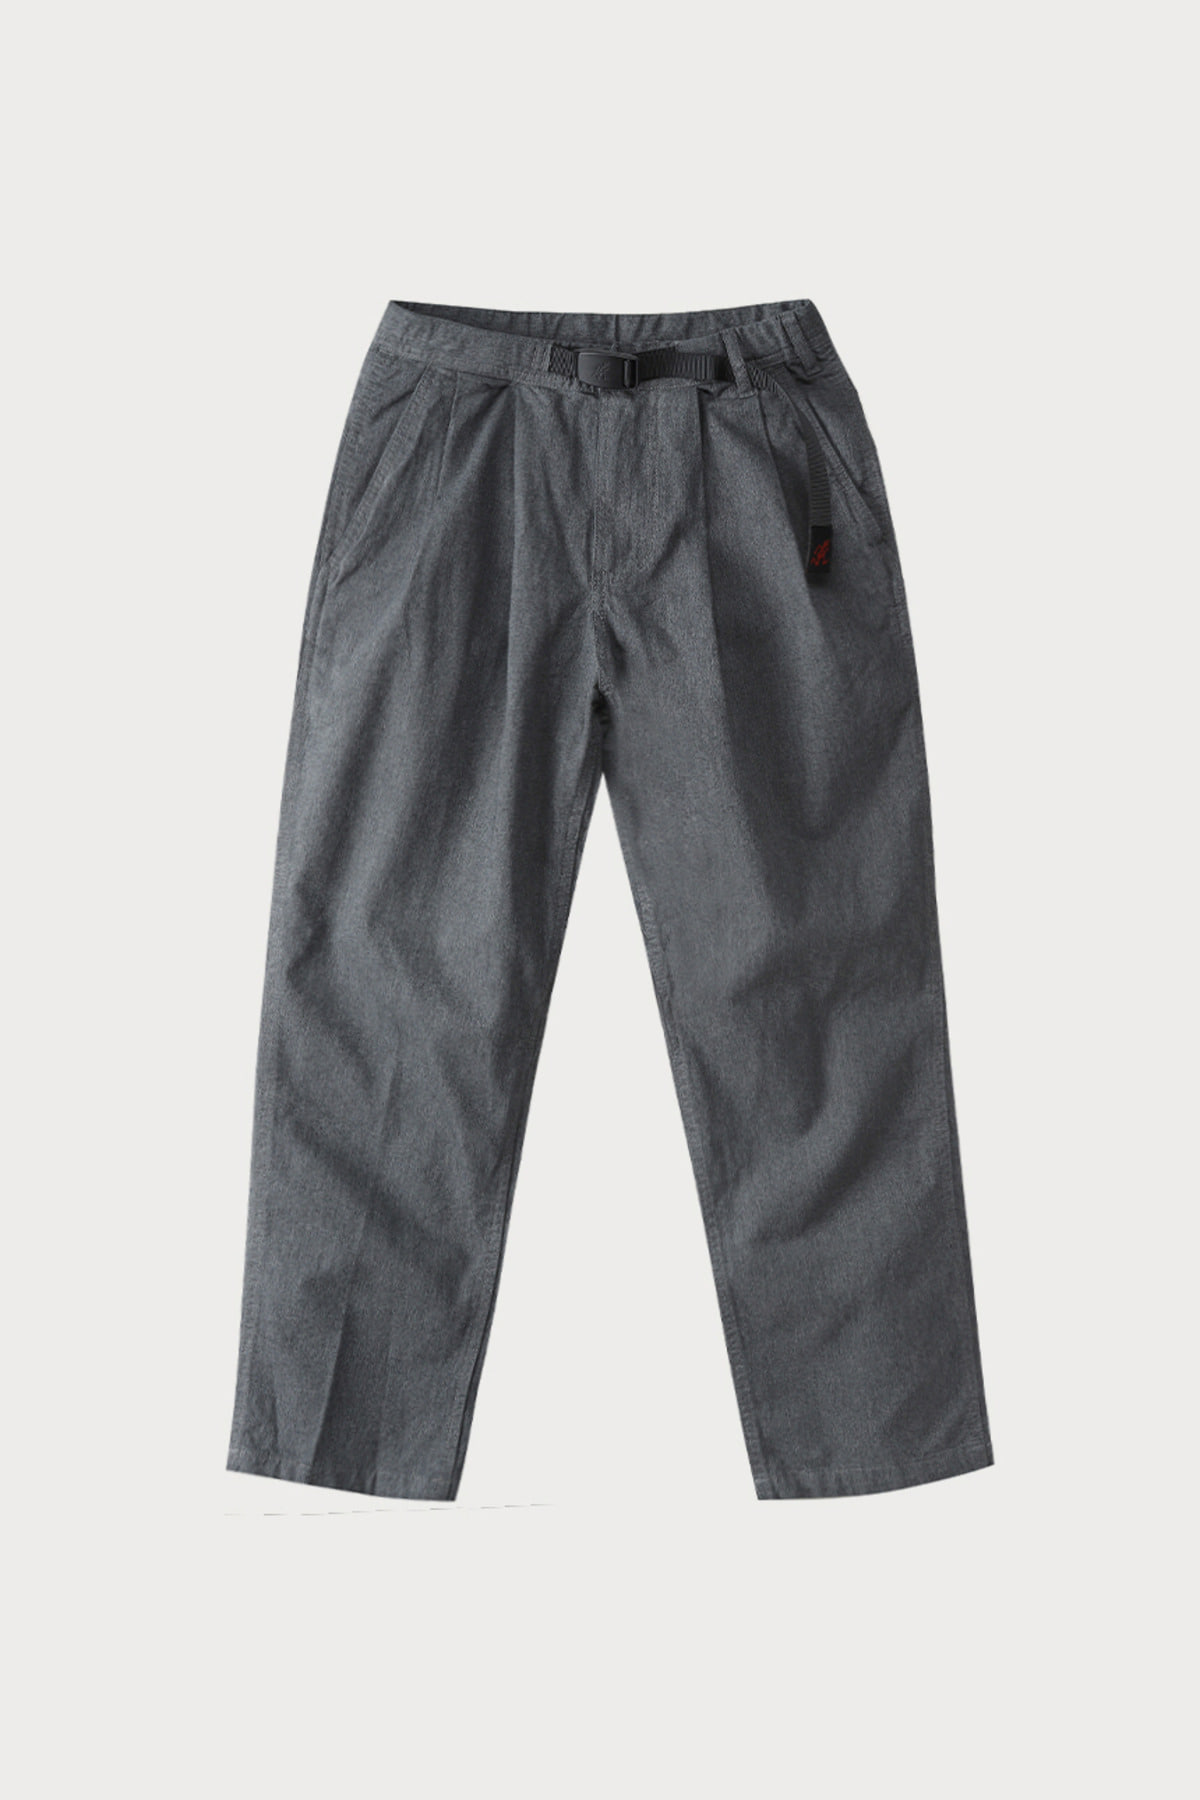 GURKHA PANTS HEATHER GREY